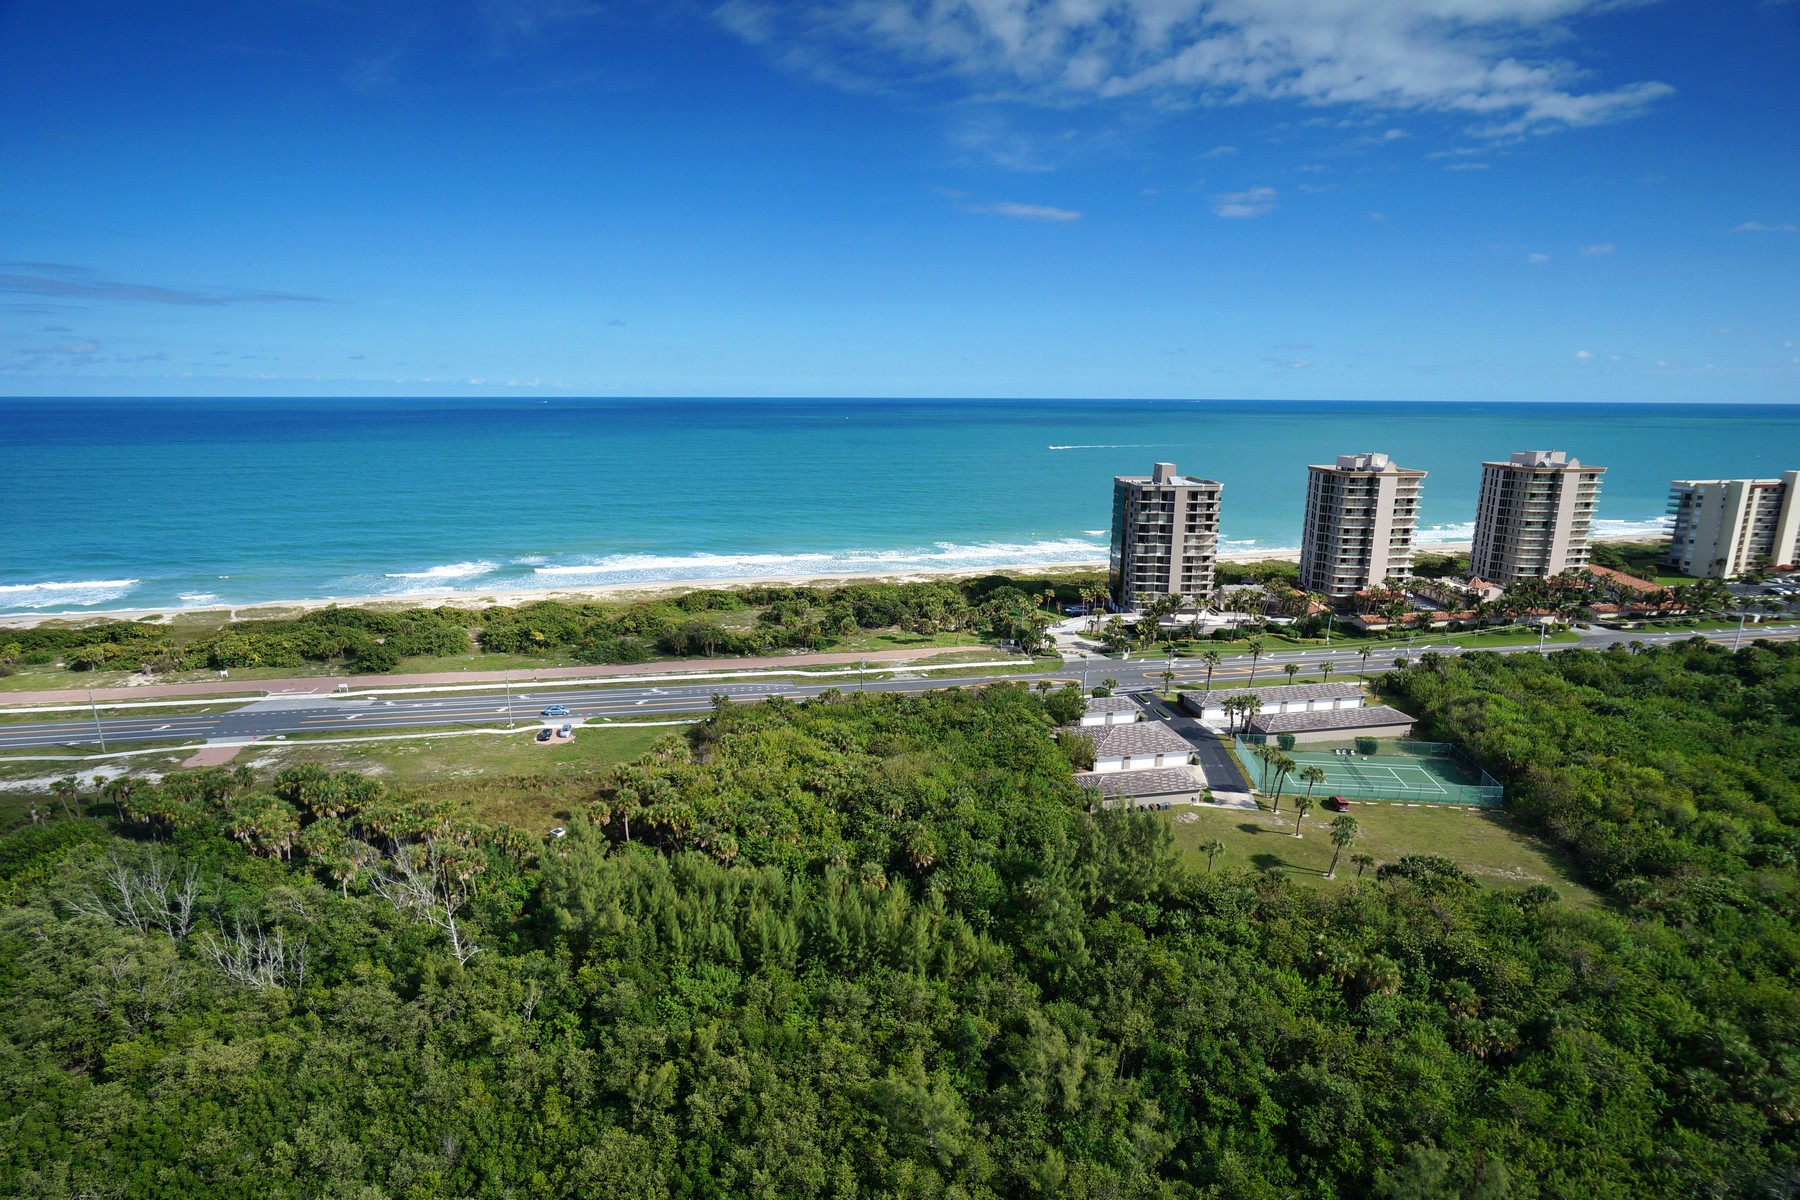 Land for Sale at Prime development site 0 N A1A Fort Pierce, Florida 34949 United States